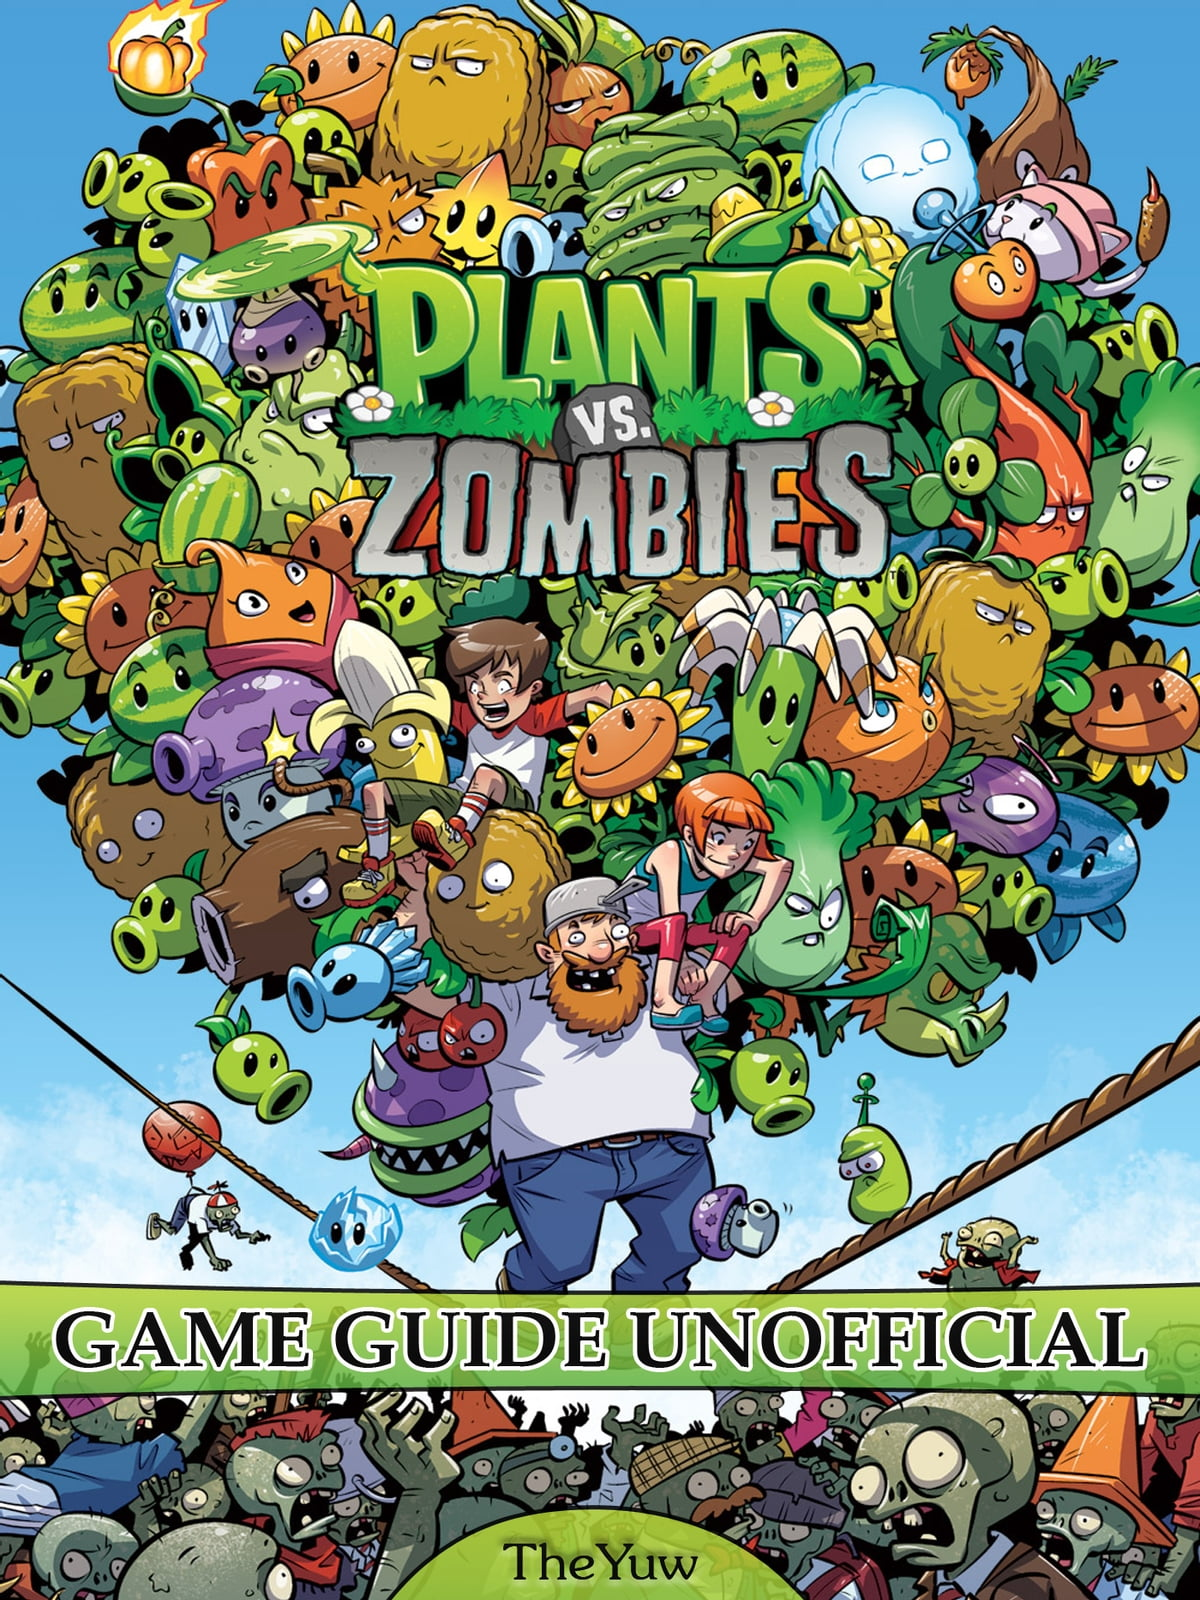 Plants Vs Zombies Game Guide Unofficial Ebook Por The Yuw